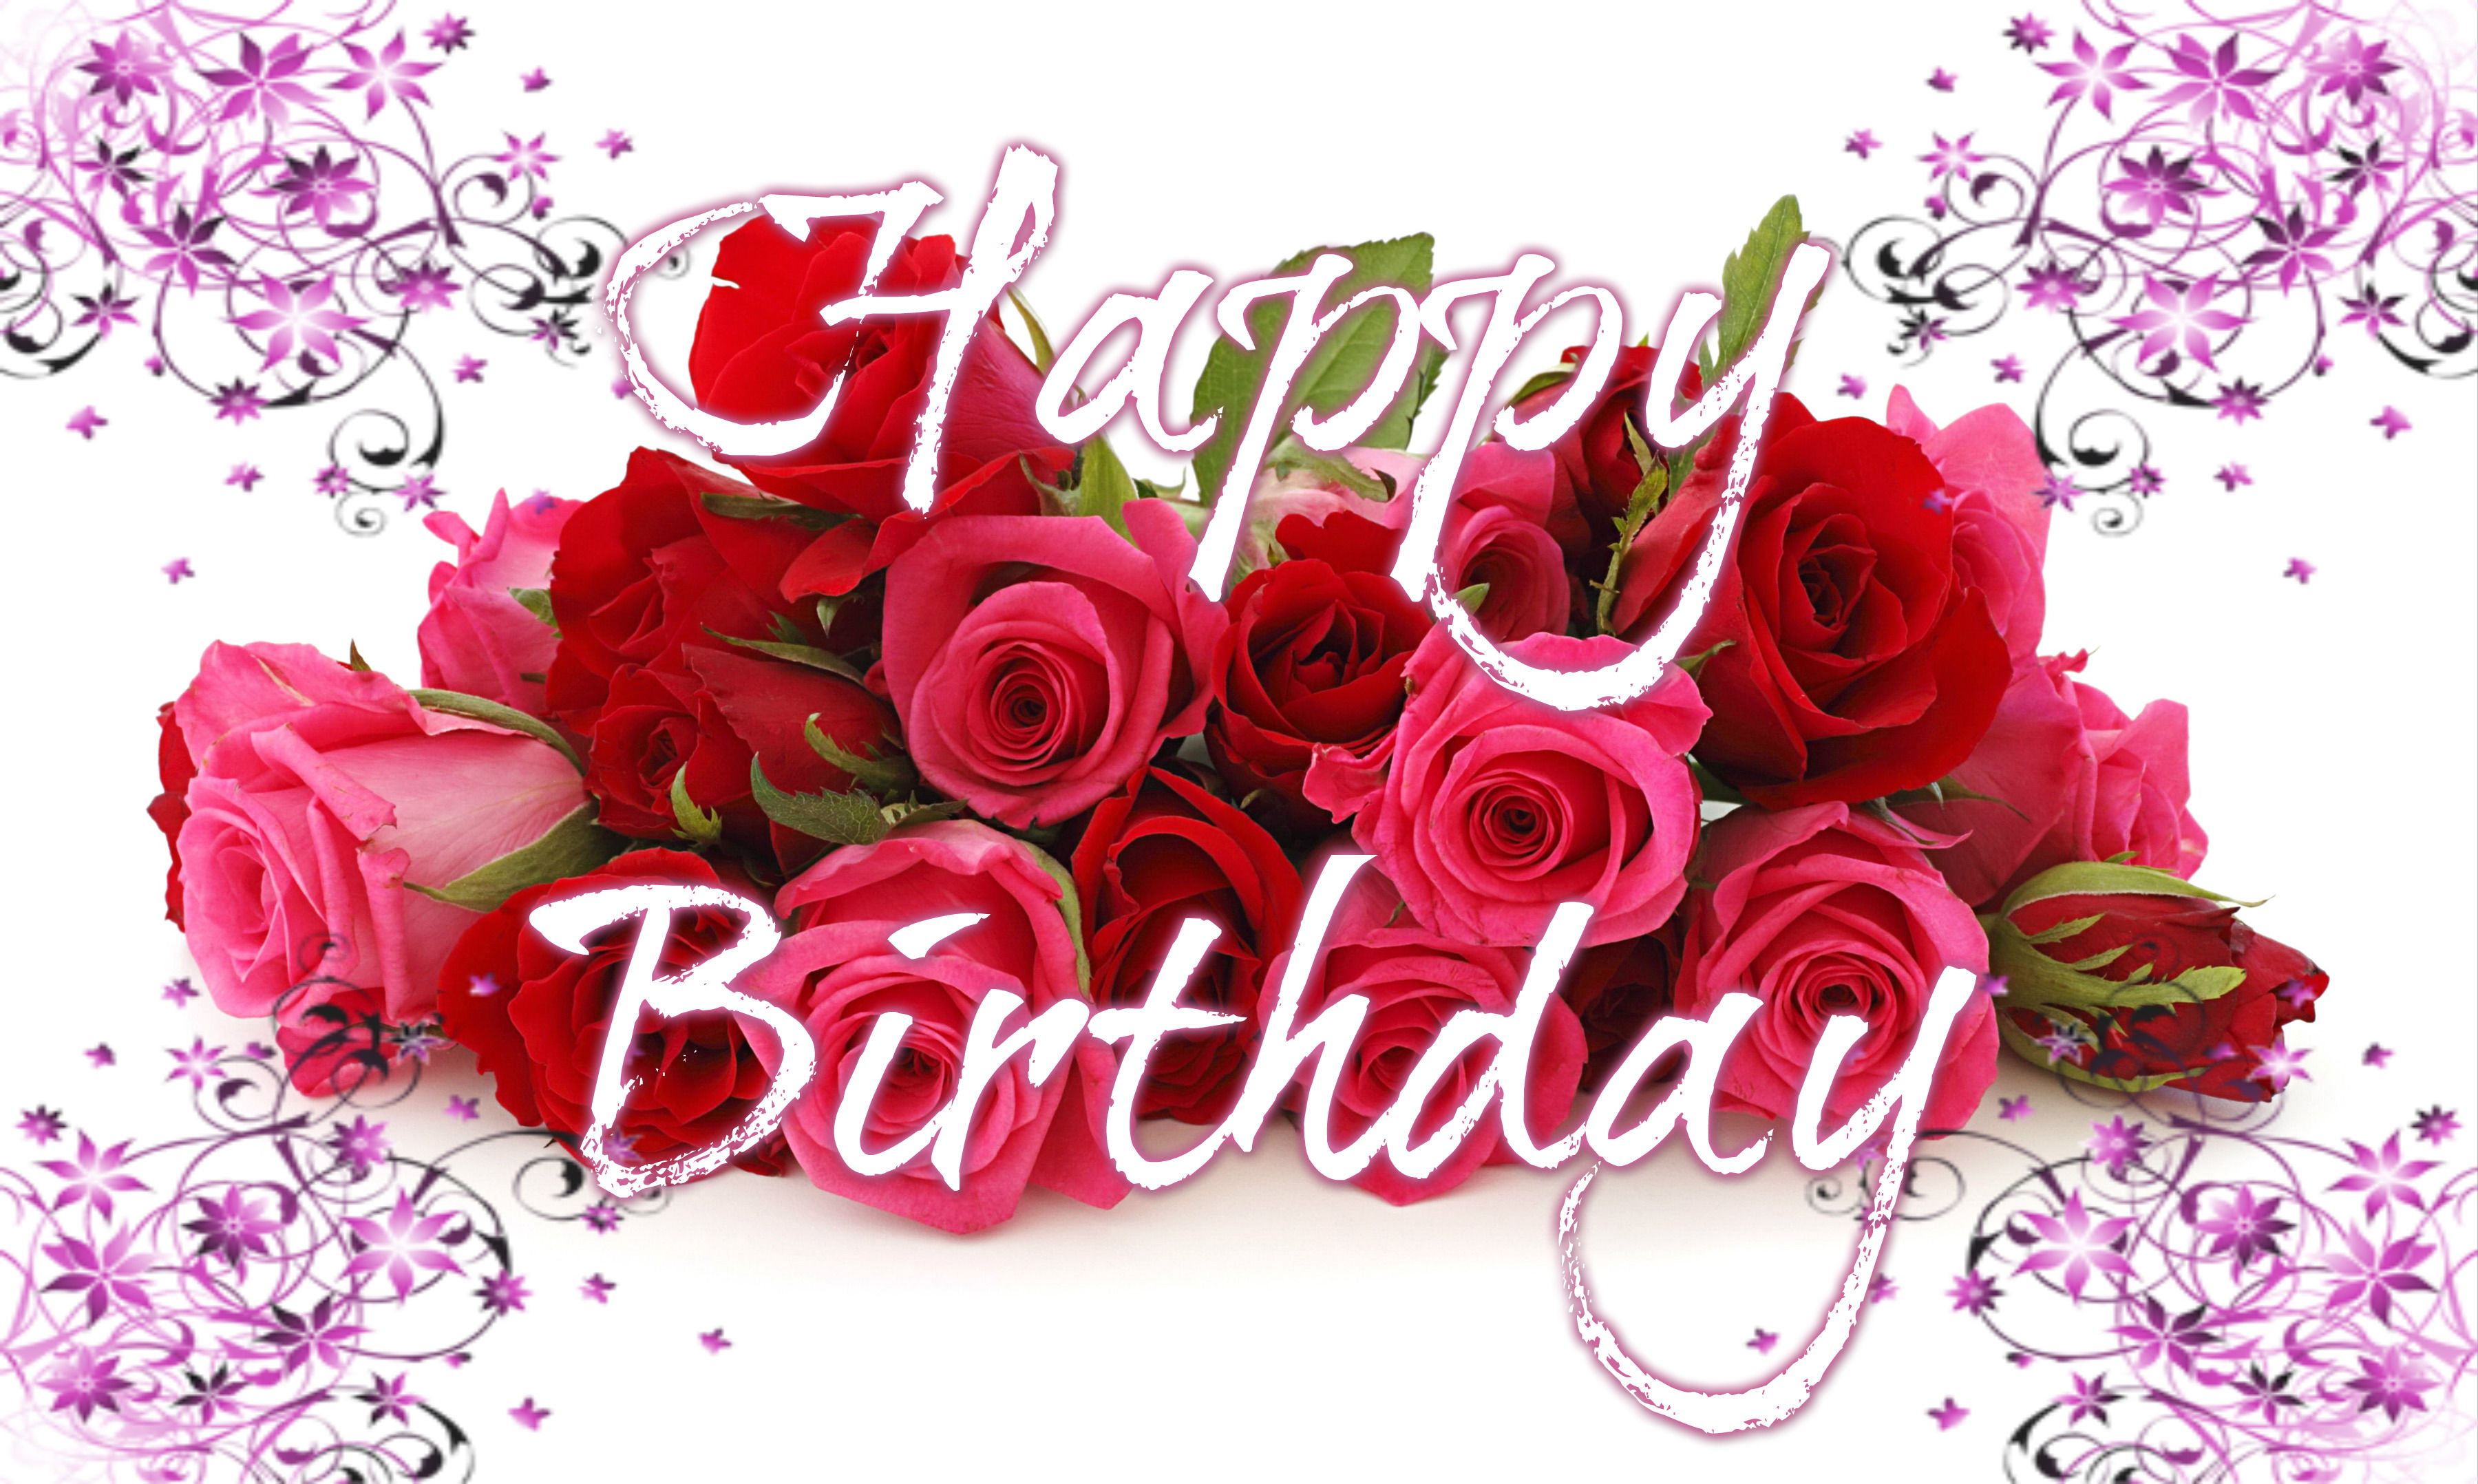 Cute Man Pictures Wallpaper 500 Happy Birthday Images Happy Birthday Wishes